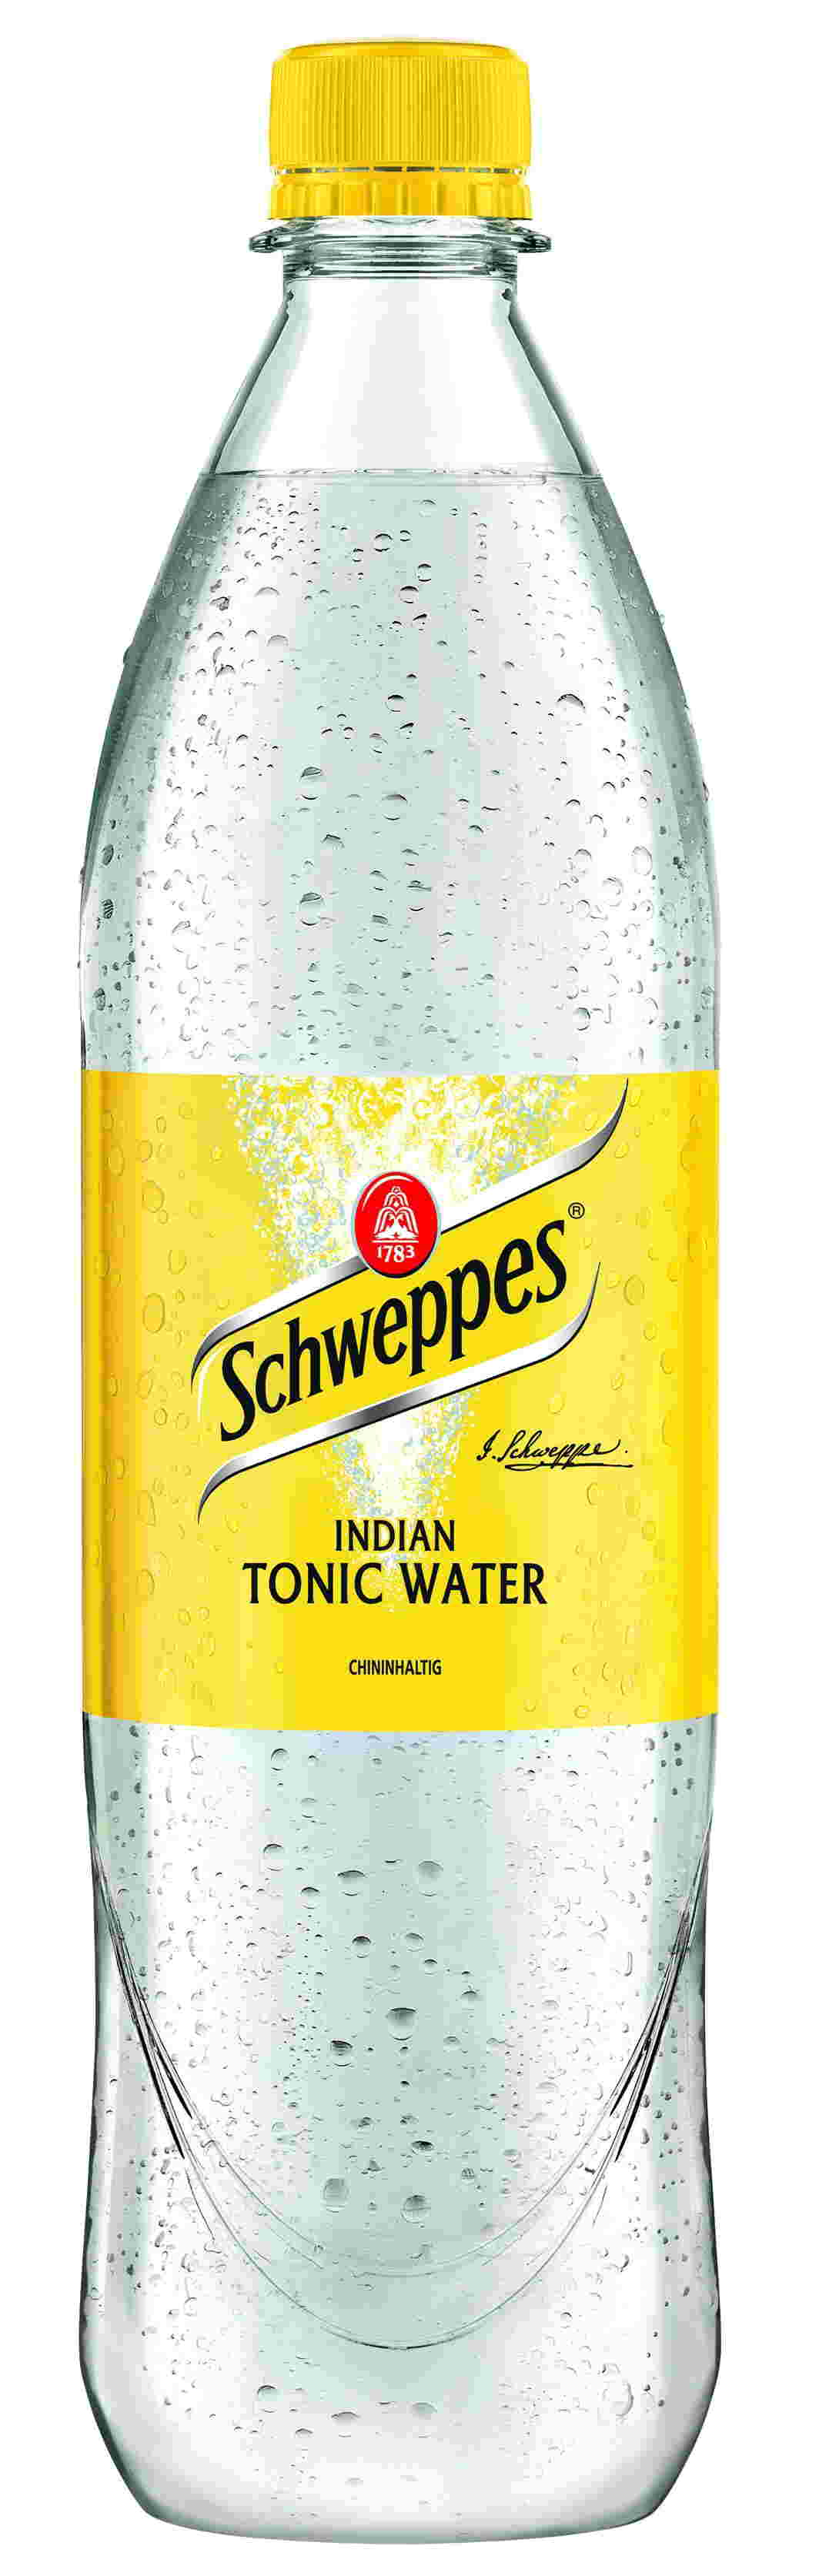 Schweppes Image